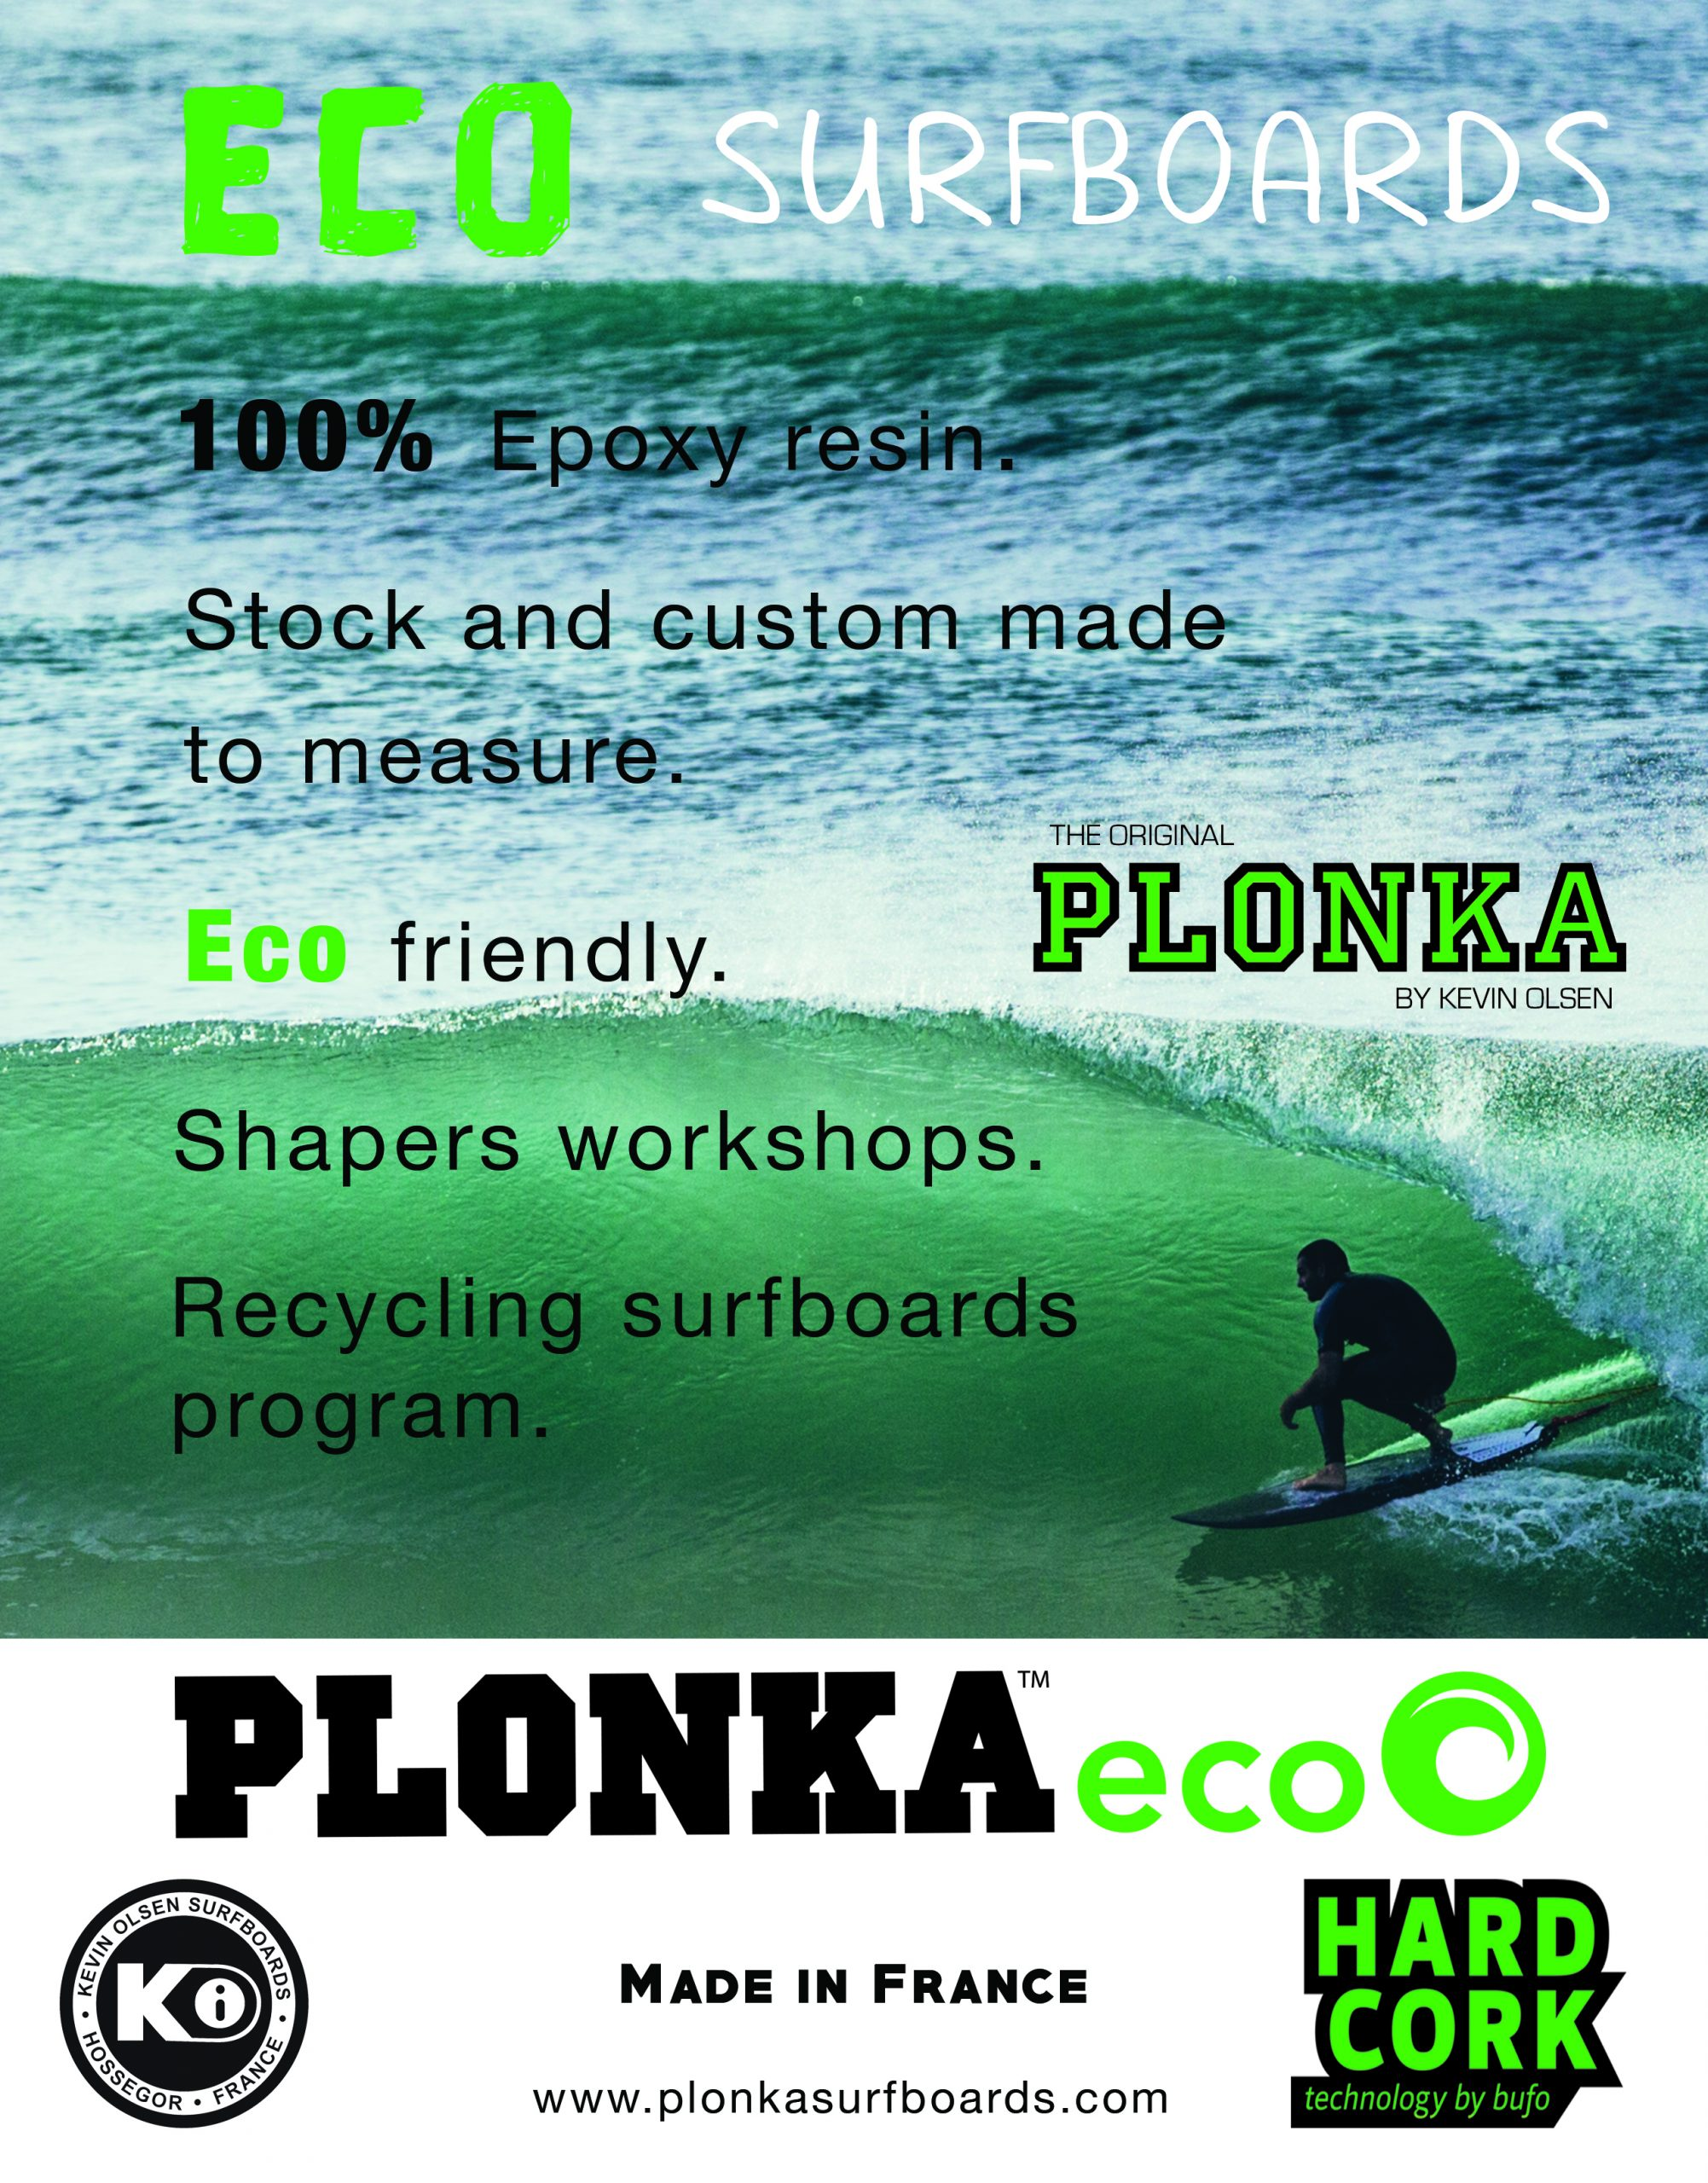 91 Plonka Surfboards